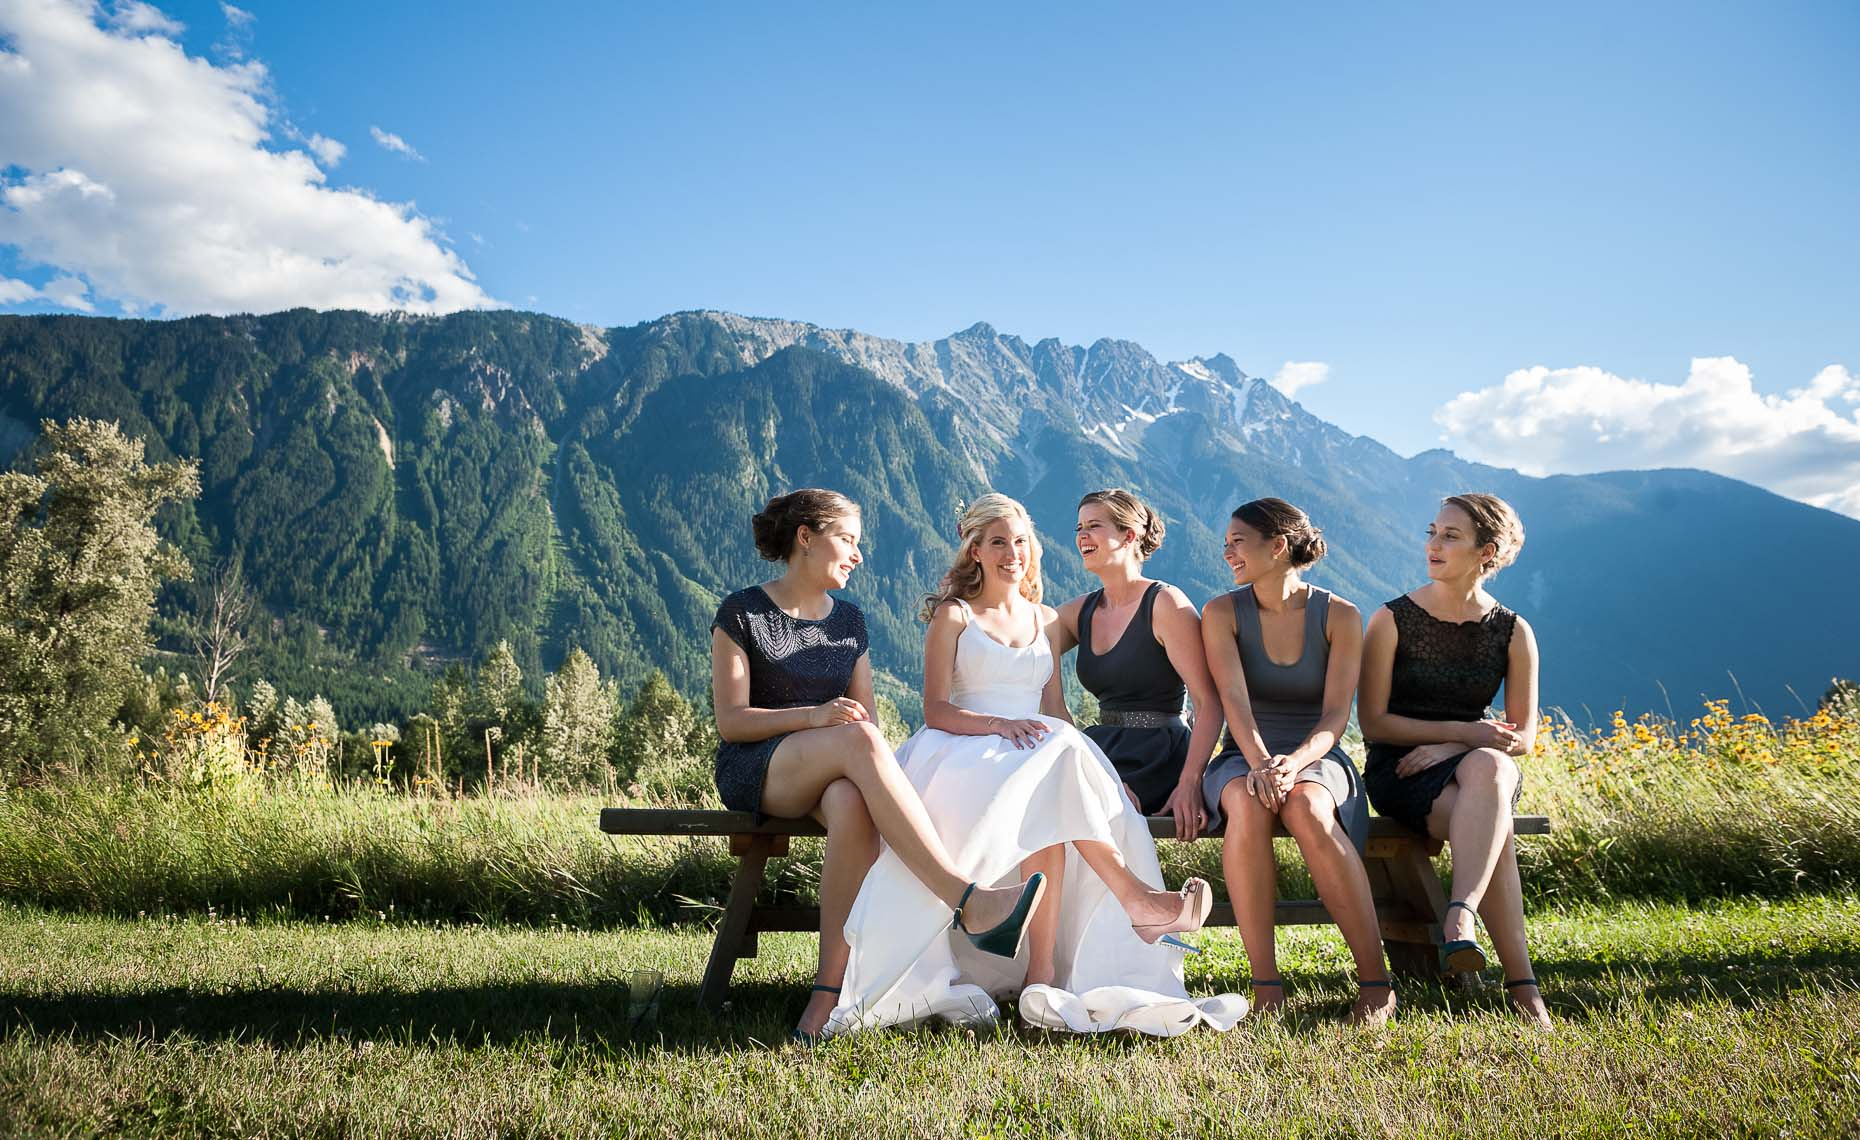 Bridal party at outdoor mountain farm wedding in Whistler.